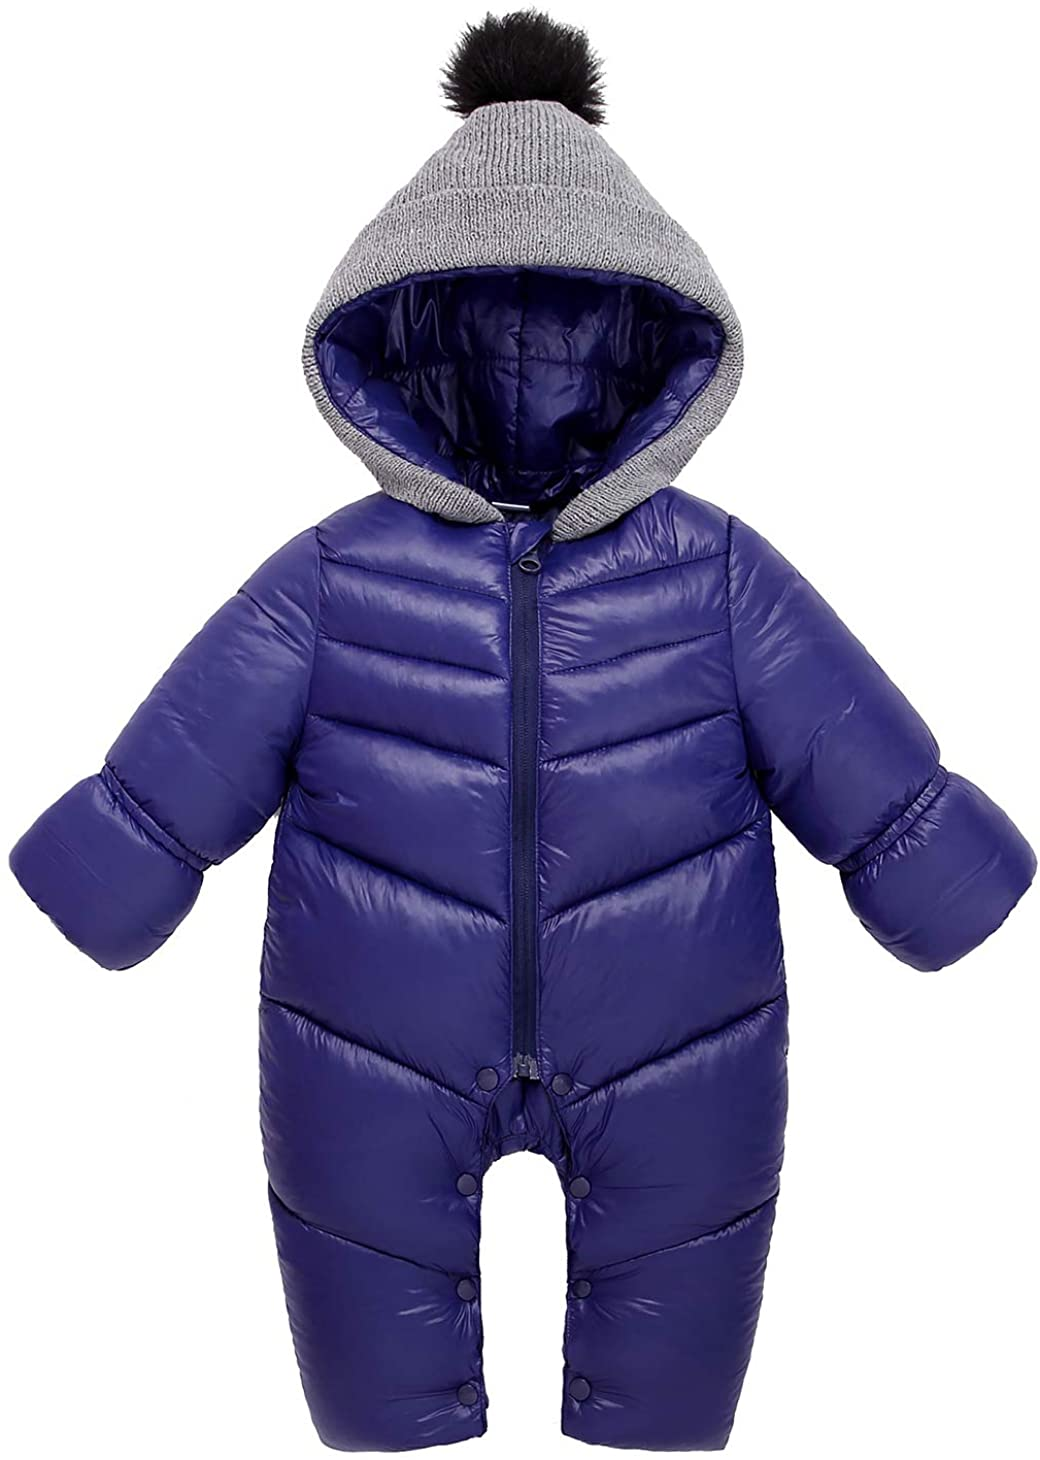 FEOYA Baby Snowsuit Long Sleeves Elastic Cuffs Solid Color Puffer Jackets